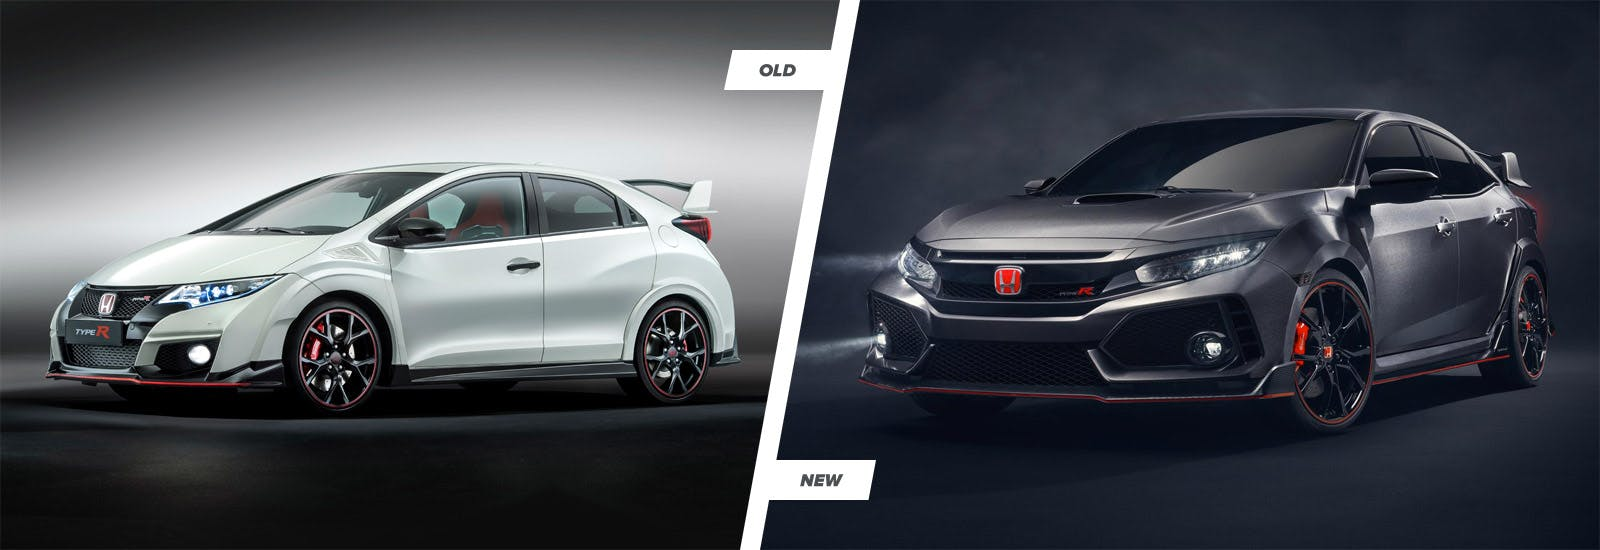 Honda civic type r new vs old compared carwow for Honda fit vs civic